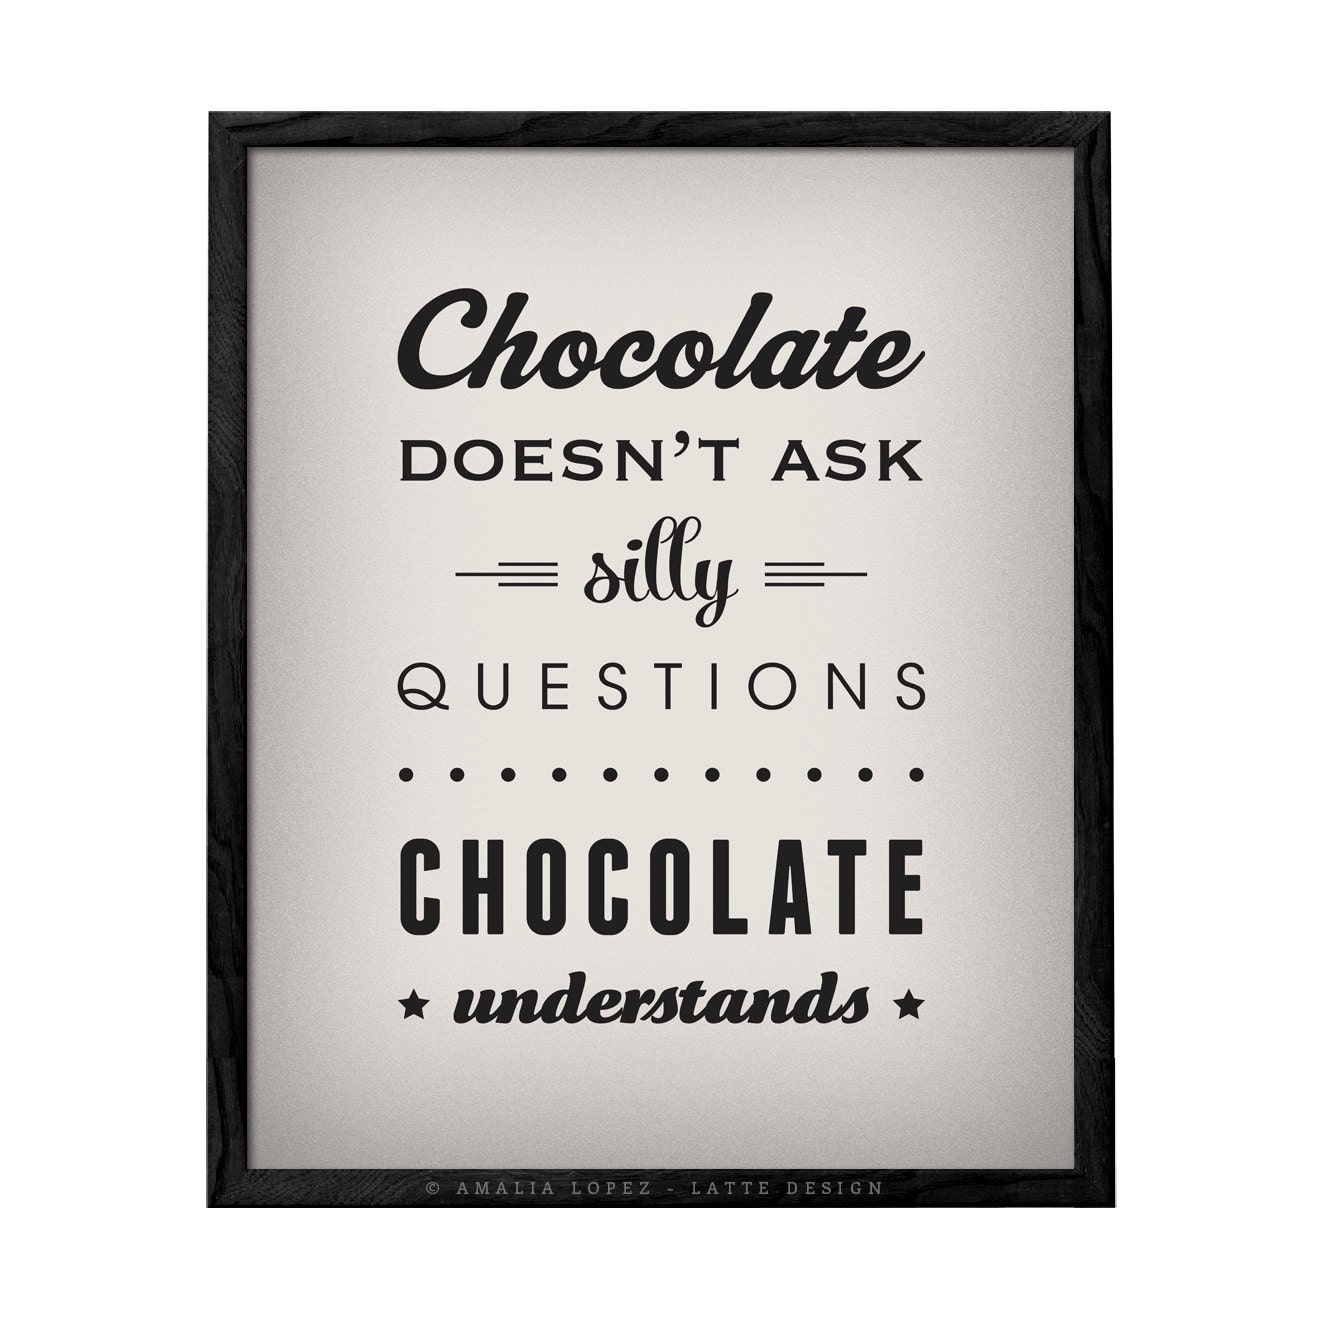 Chocolate doesn\'t ask silly questions Chocolate